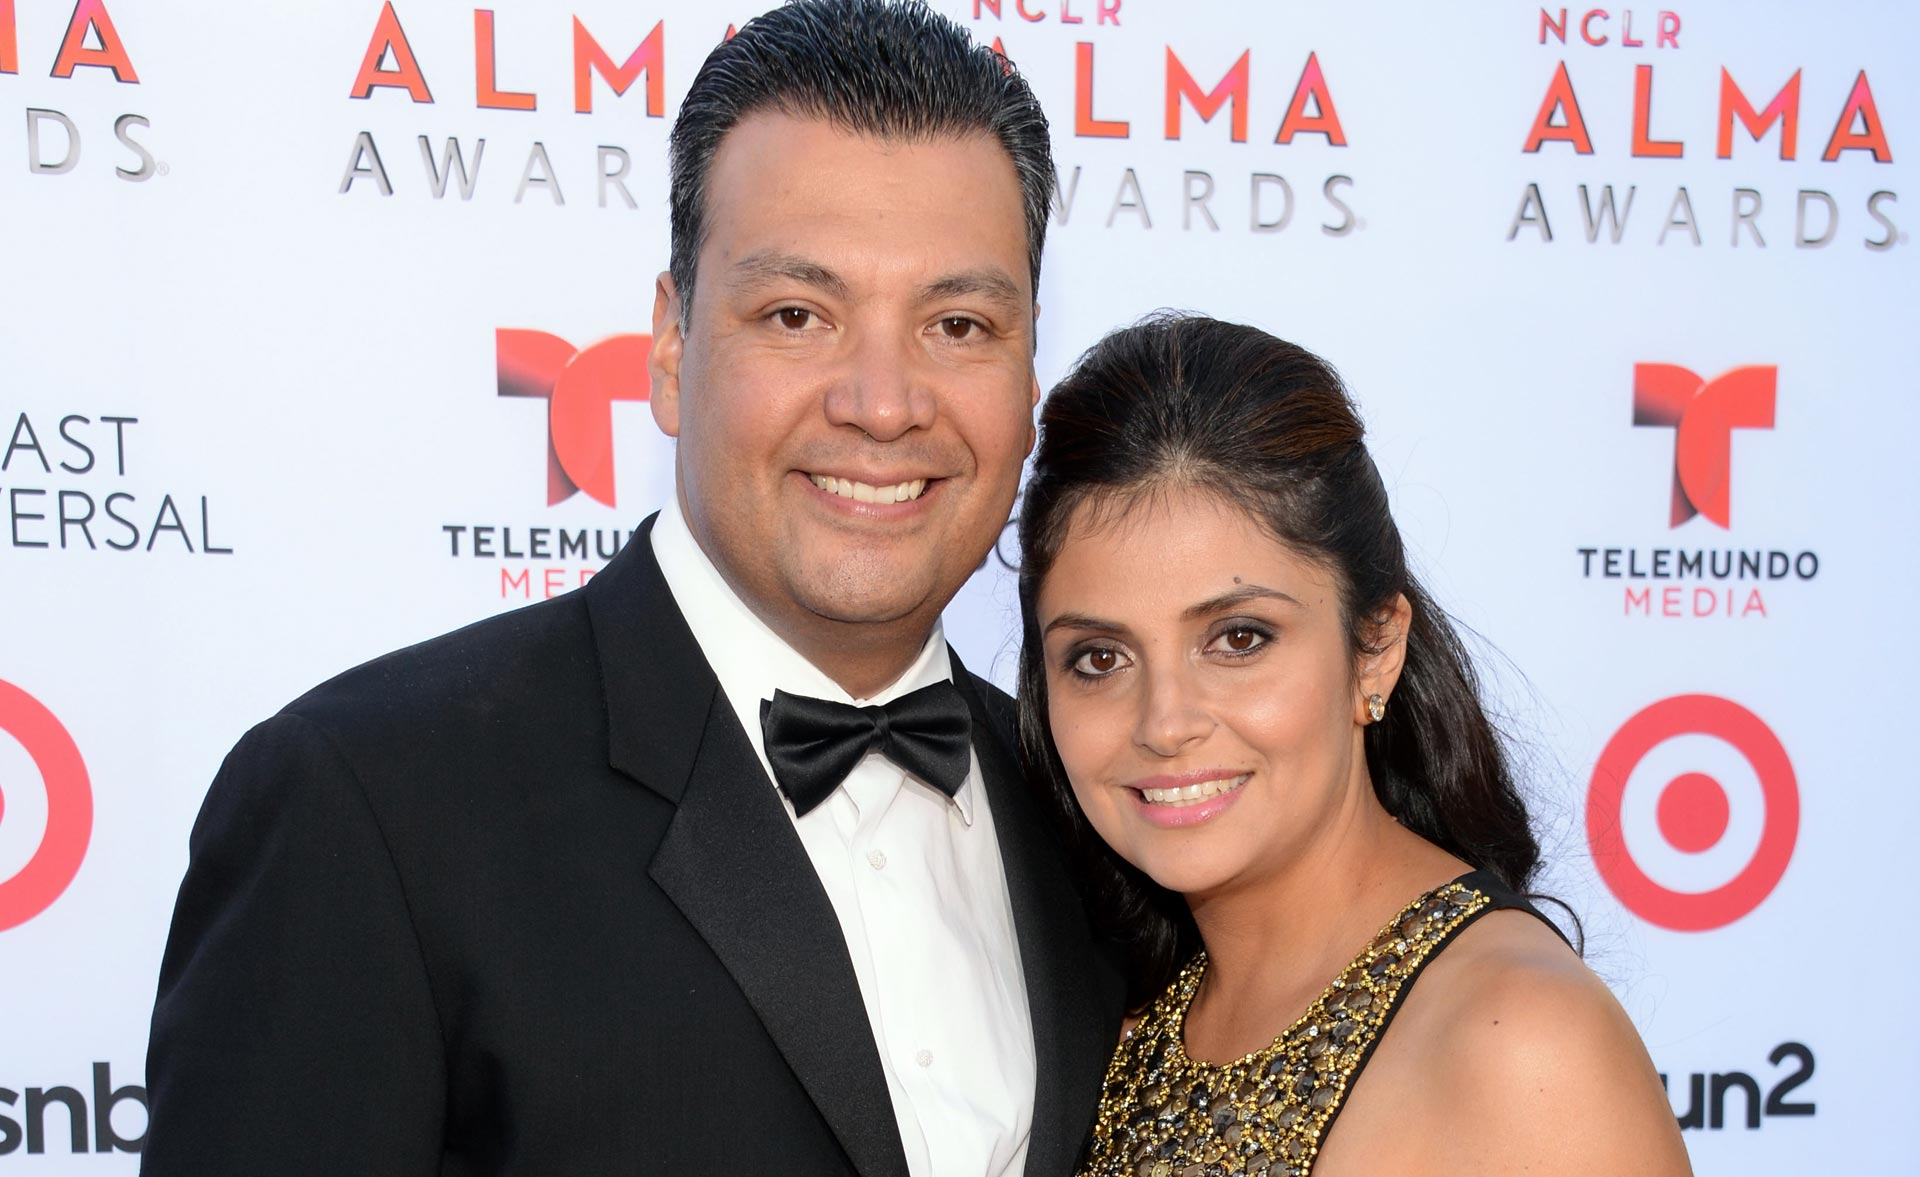 Secretary of State Alex Padilla and his wife Angela attend an awards event in Pasadena in 2013.